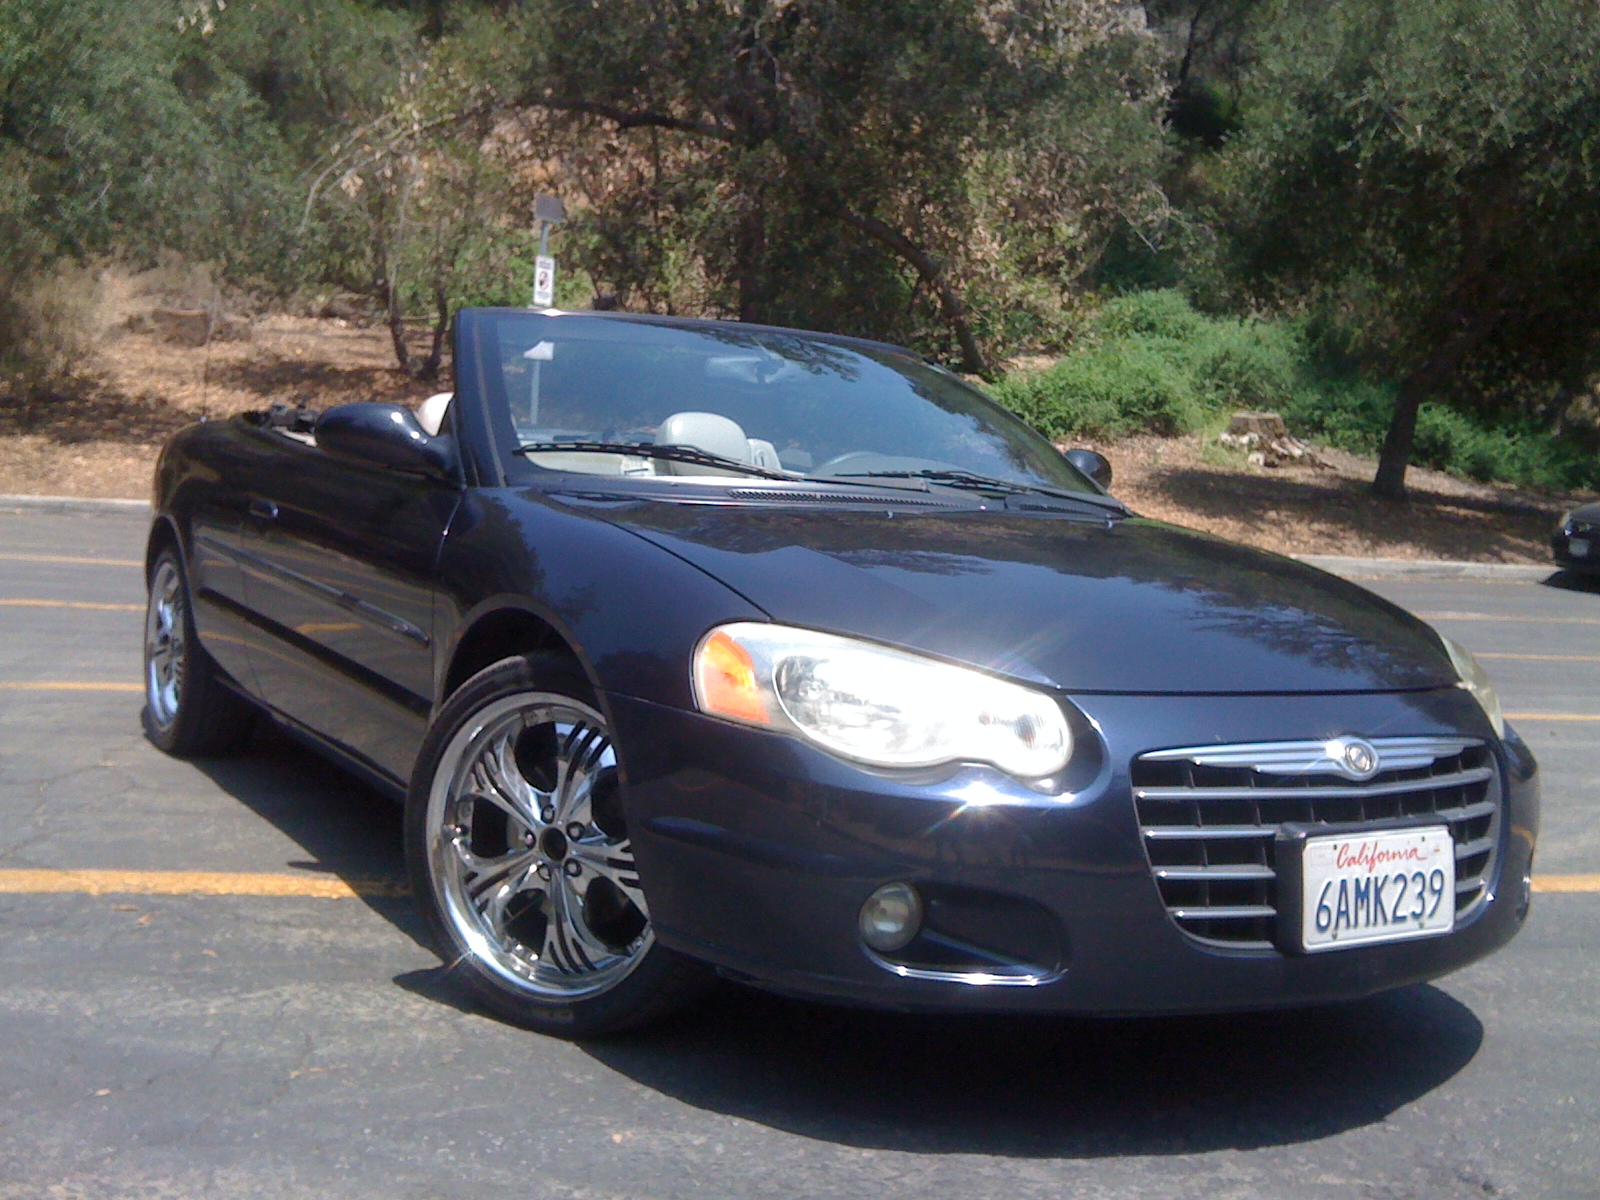 2004 chrysler sebring exterior pictures cargurus. Black Bedroom Furniture Sets. Home Design Ideas